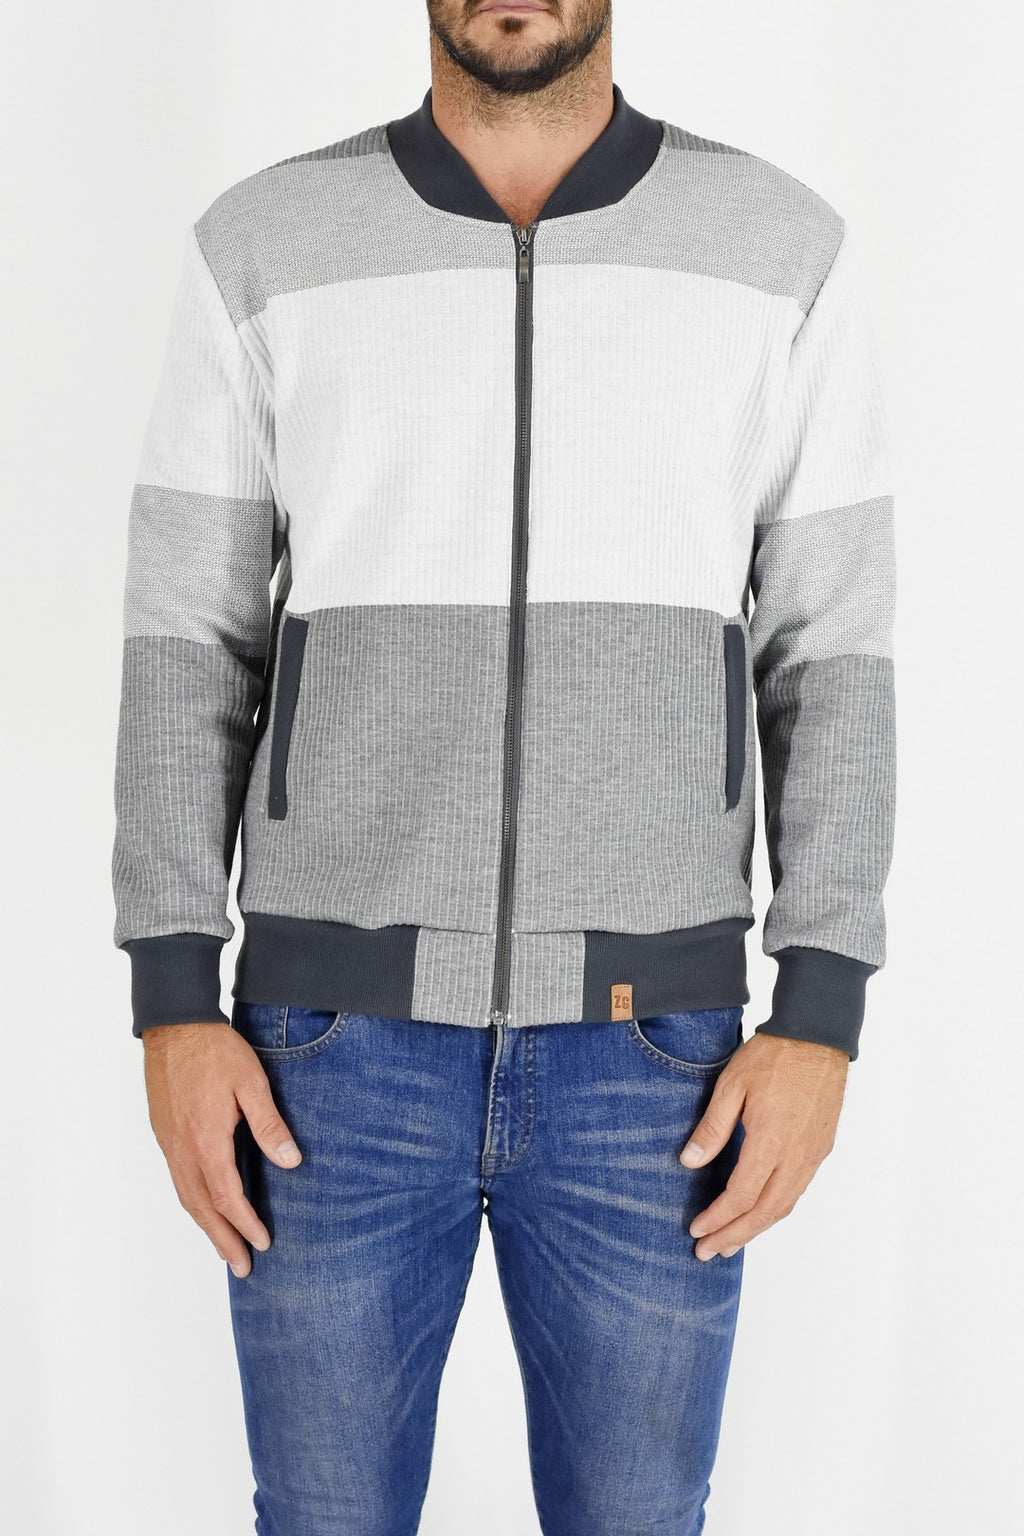 Mens Greys and Milk Bomber Jacket ZG5202